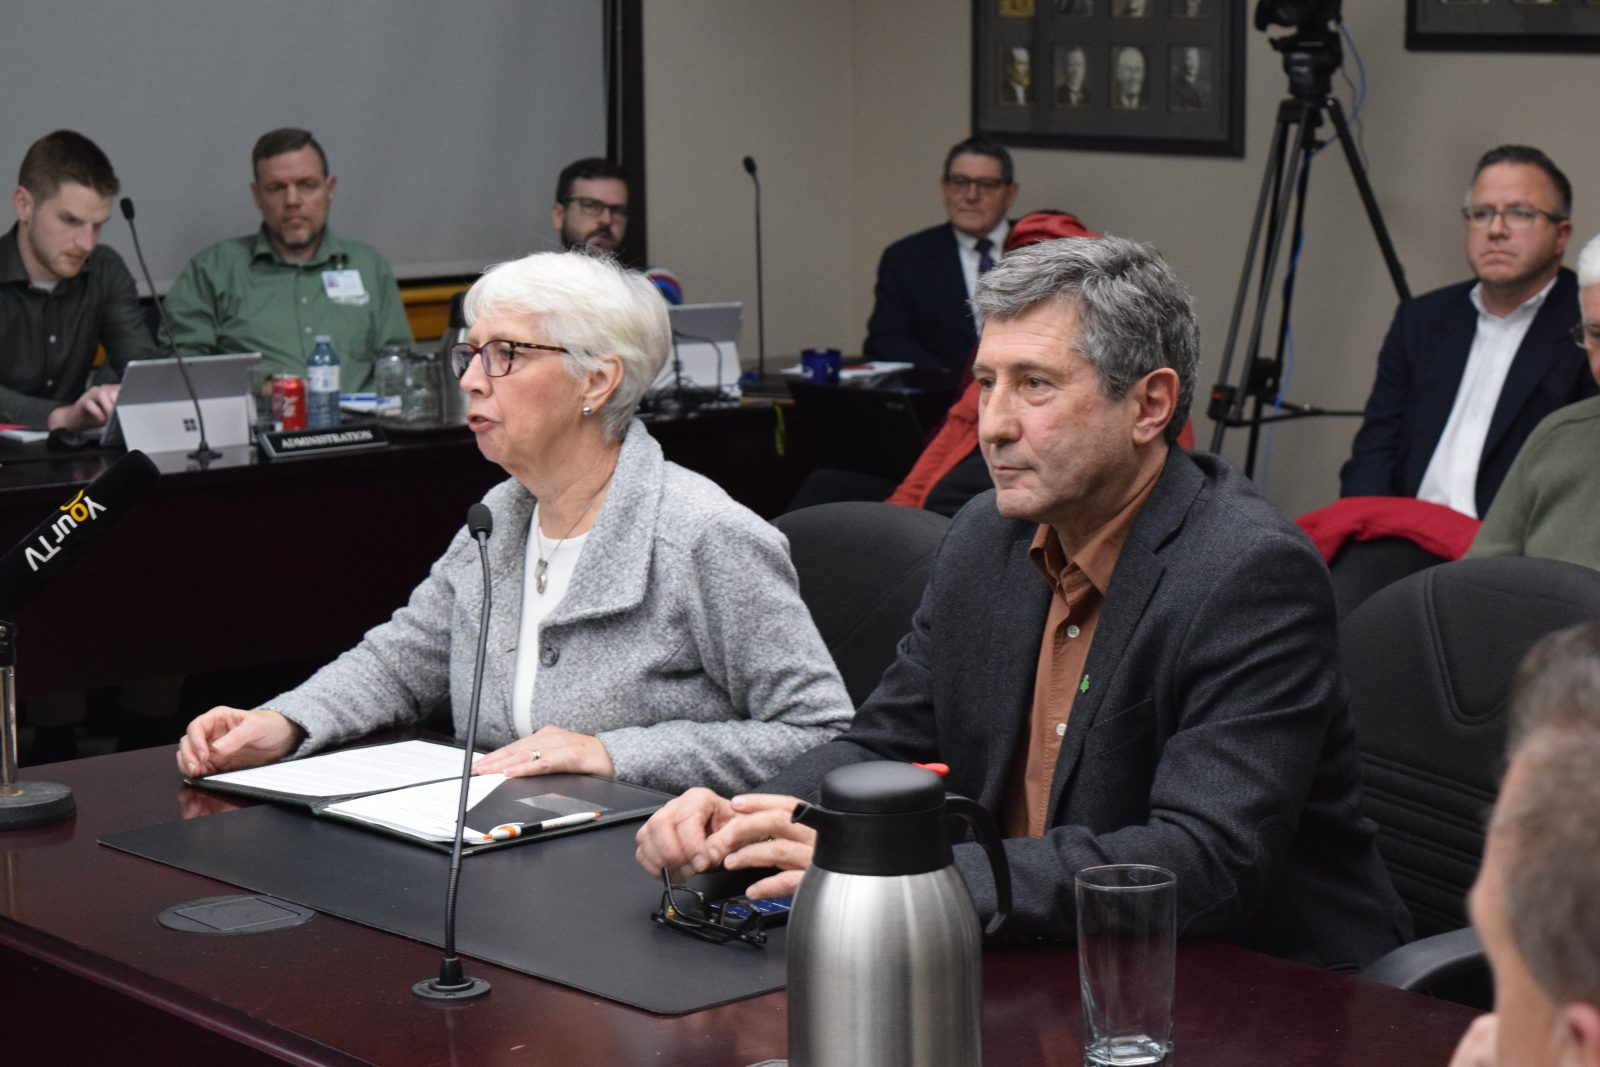 Council considers growing canopy